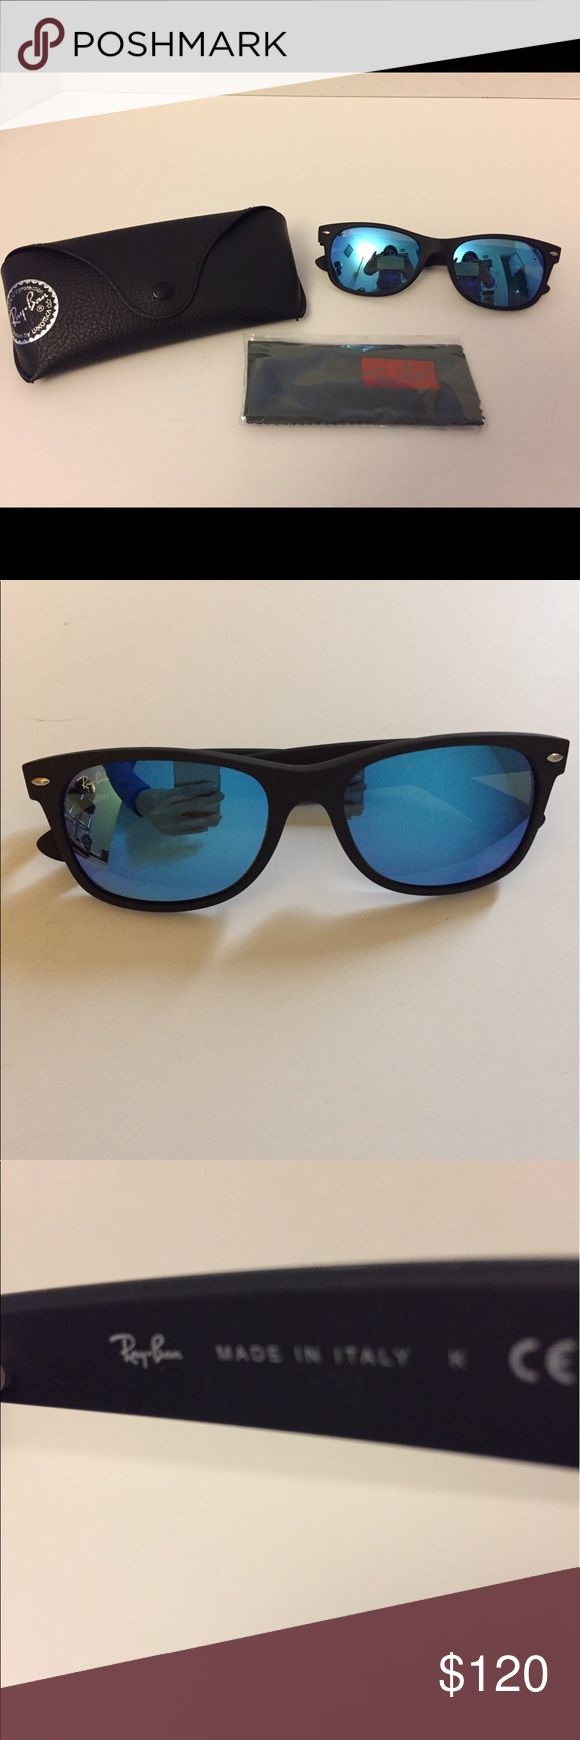 Ray-Ban New Wayfarer Blue Lenses Sunglasses Ray-Ban New Wayfarer Sunglasses with Blue Lenses.  Only Worn Once.  No Scratches! Comes with Soft Case and Cleaning Cloth. Ray-Ban Accessories Sunglasses